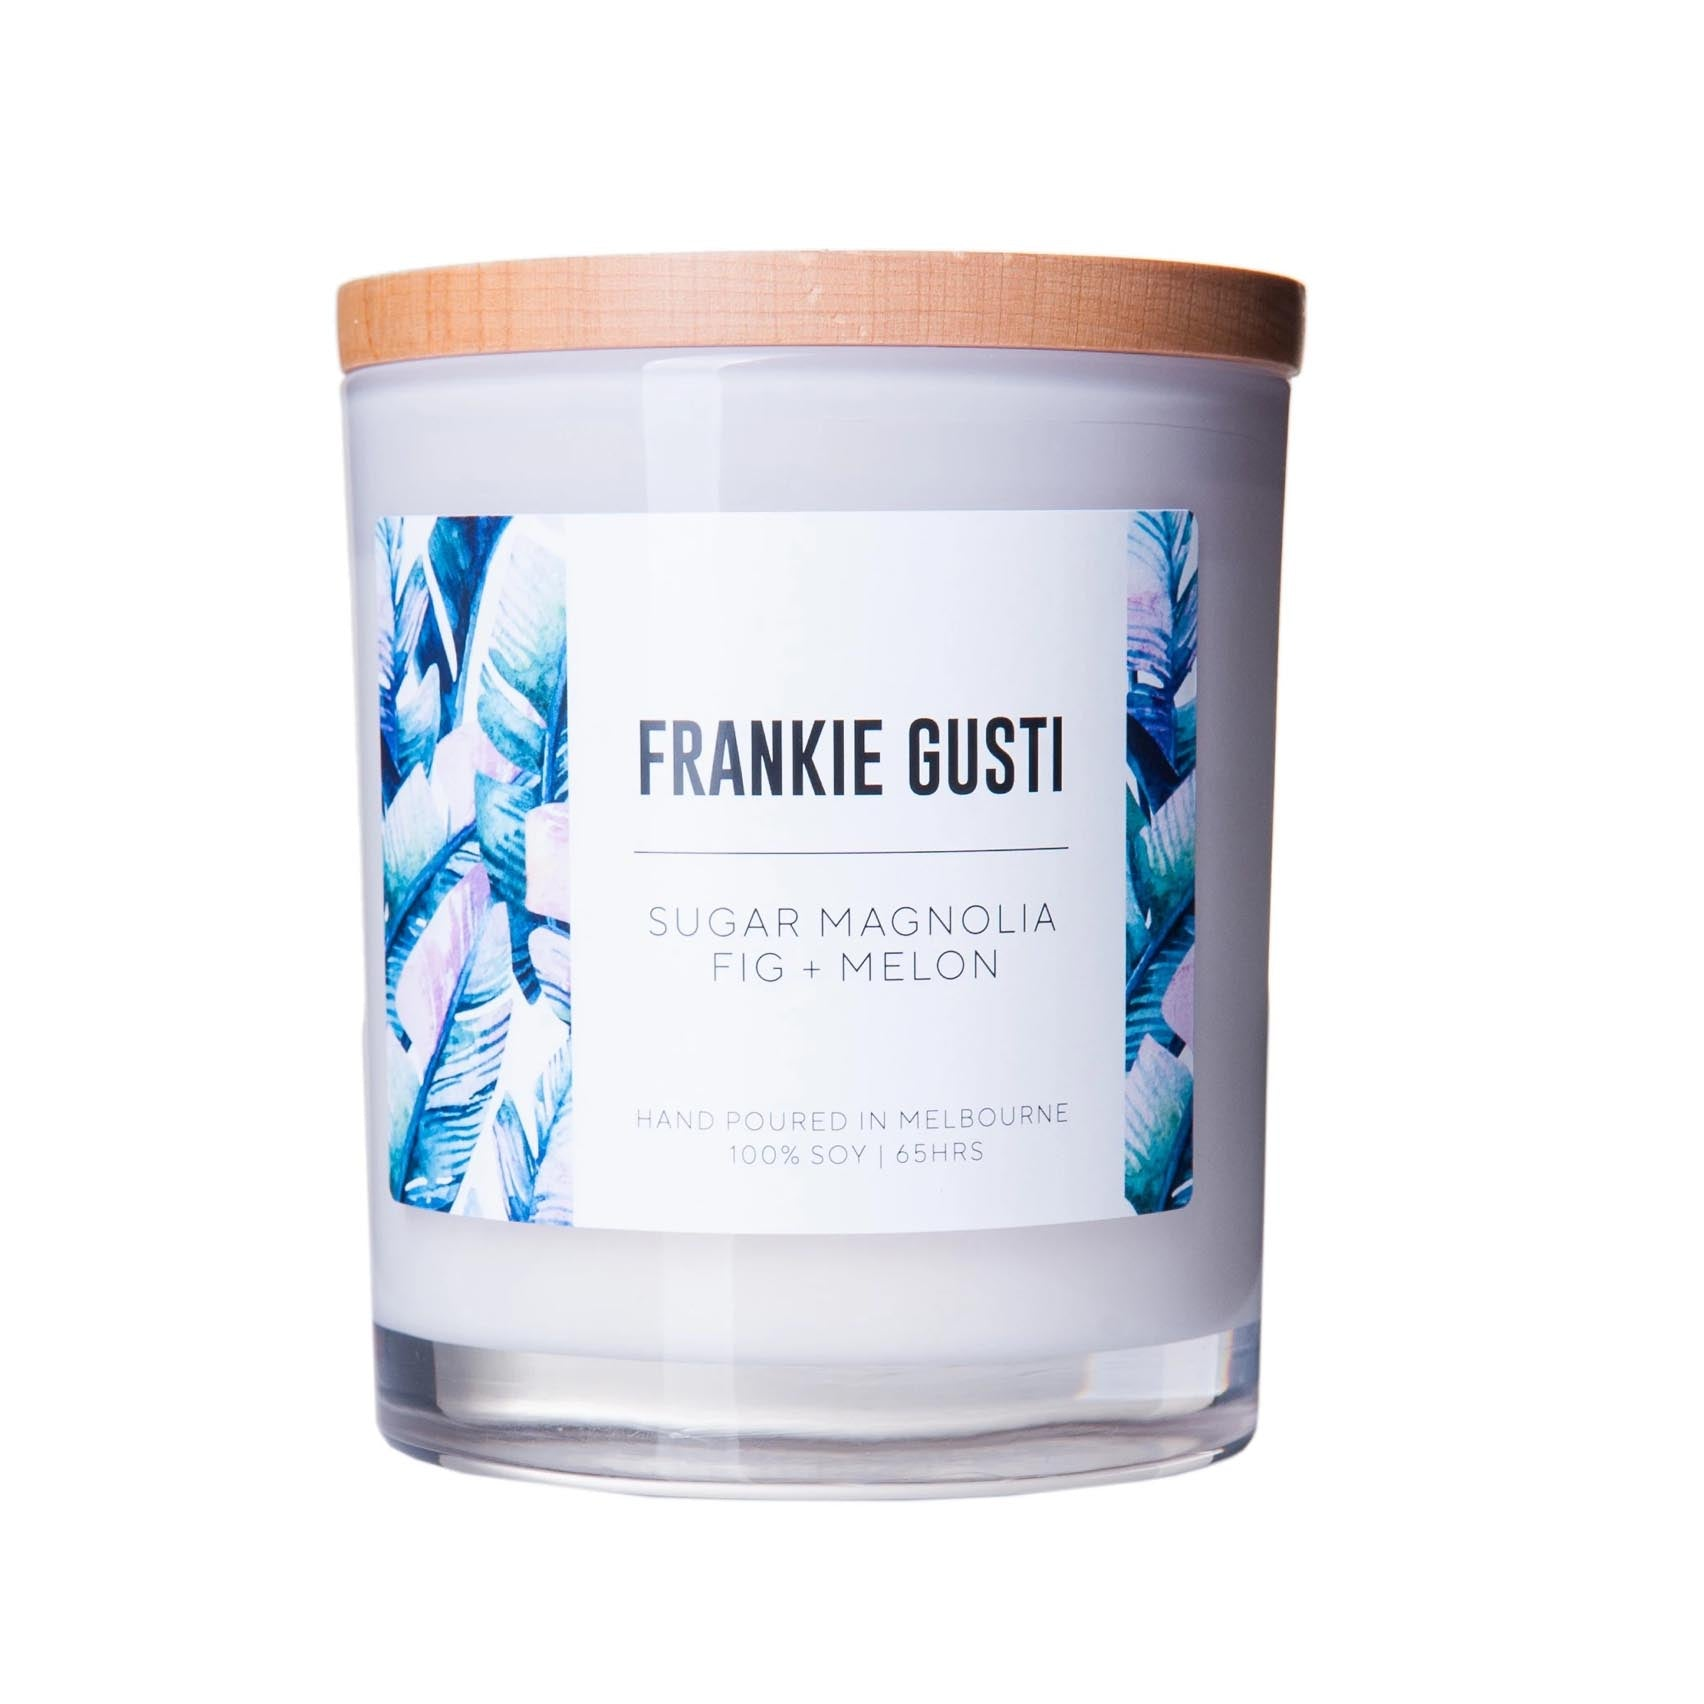 Sugar Magnolia, Fig & Melon Candle